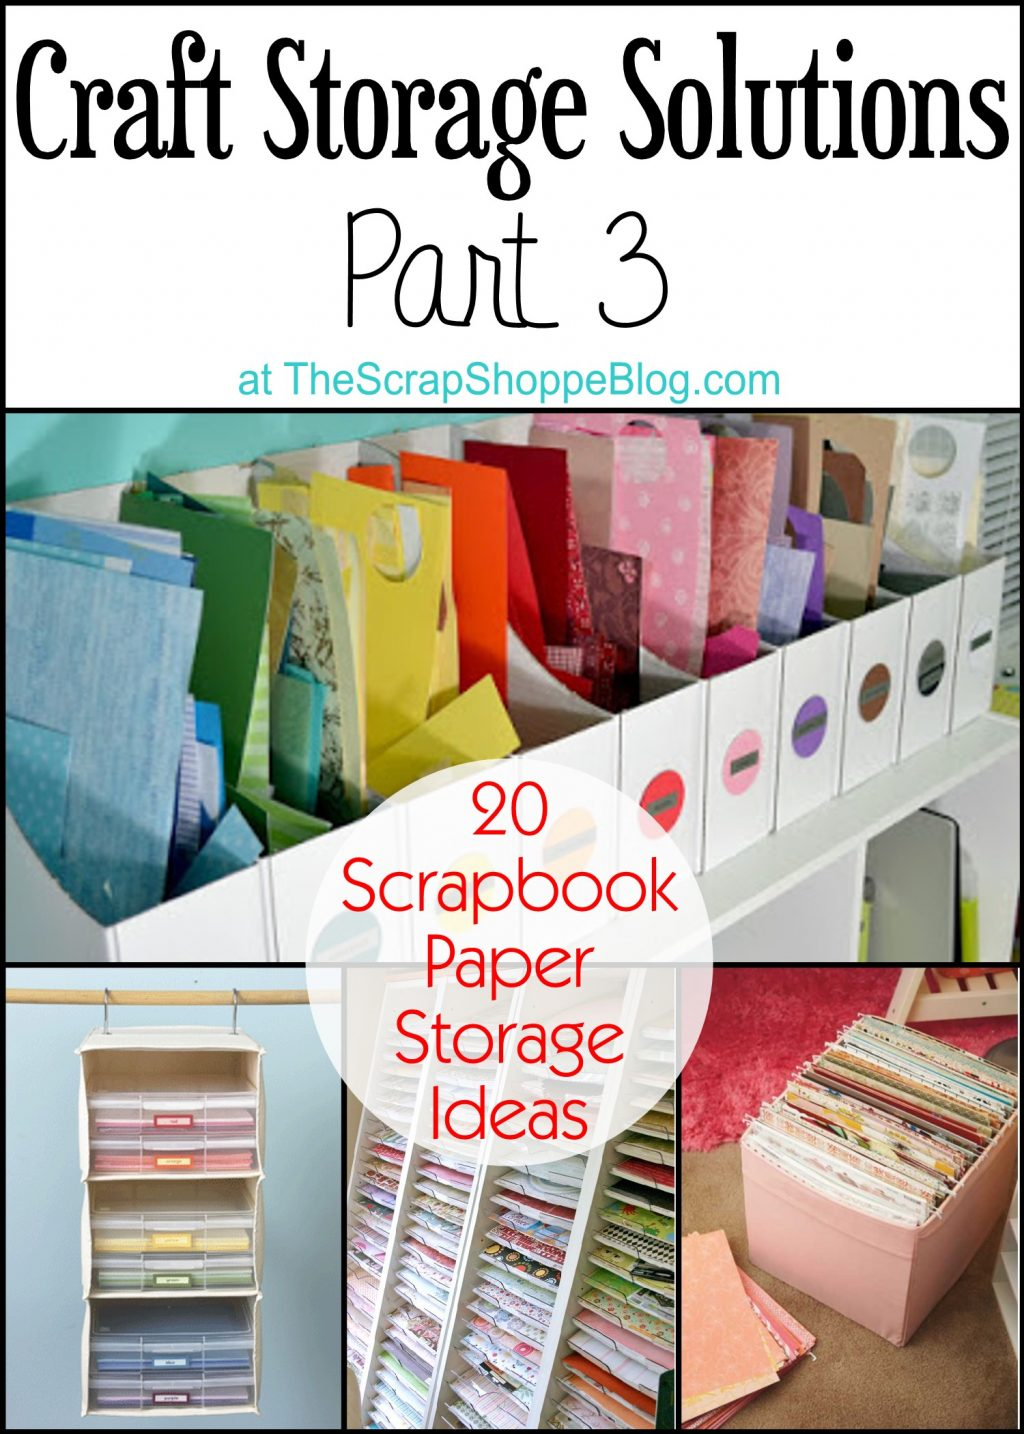 20 Sbook Paper Storage Ideas